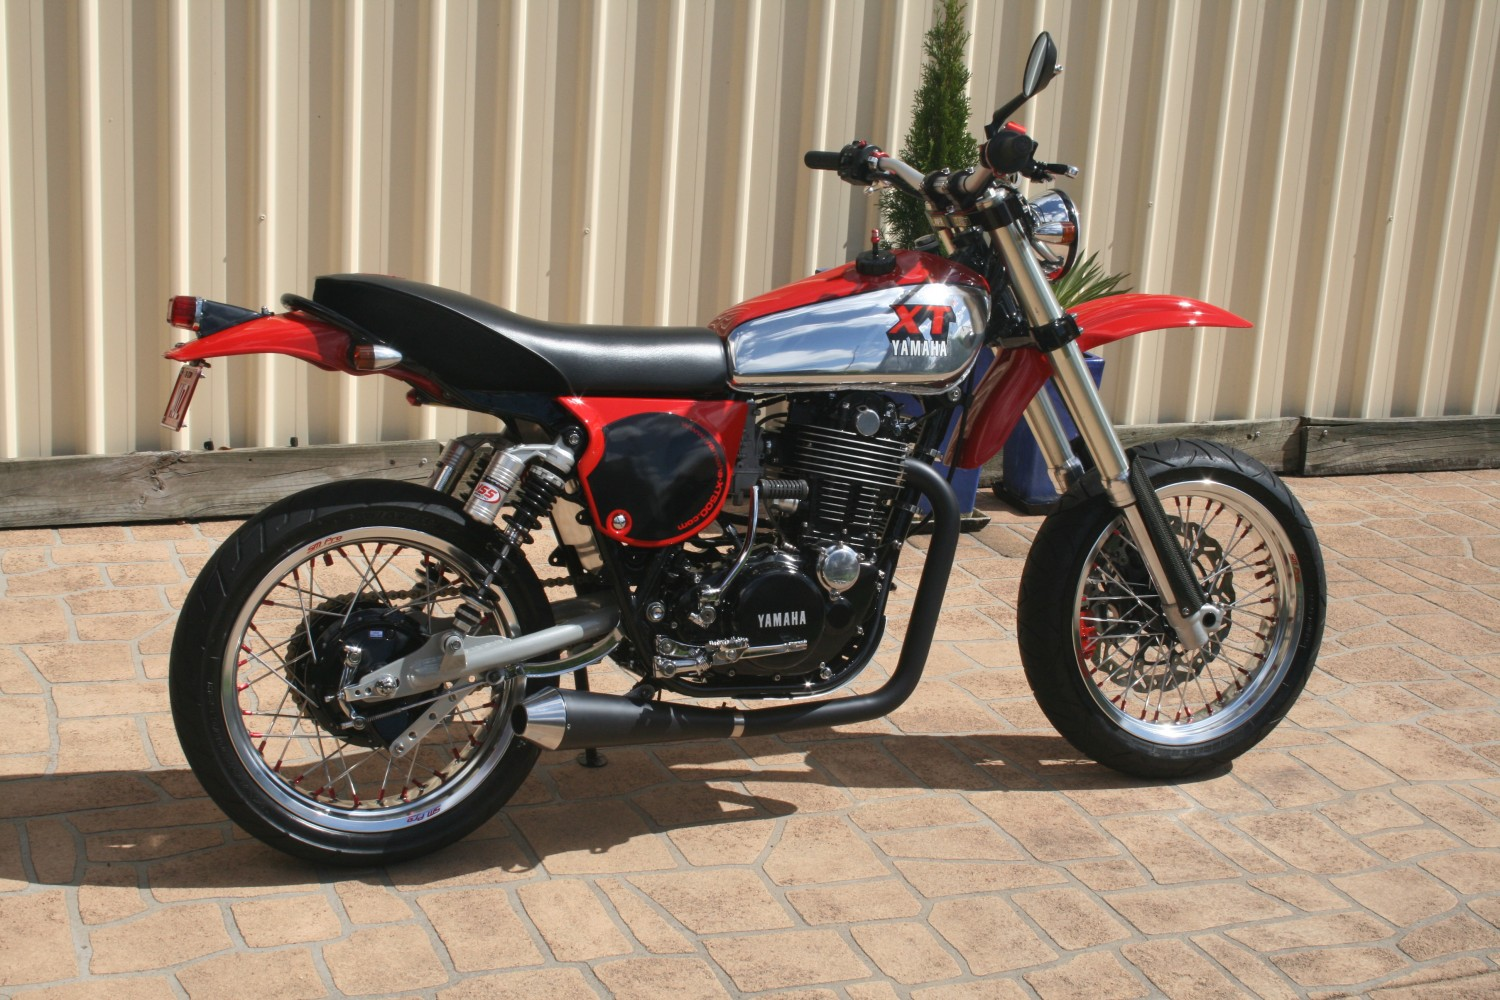 yamaha xt500 1977 xt custom 2928 supermotard shannons featured thumper another sweet visitar sr motorcycle tag